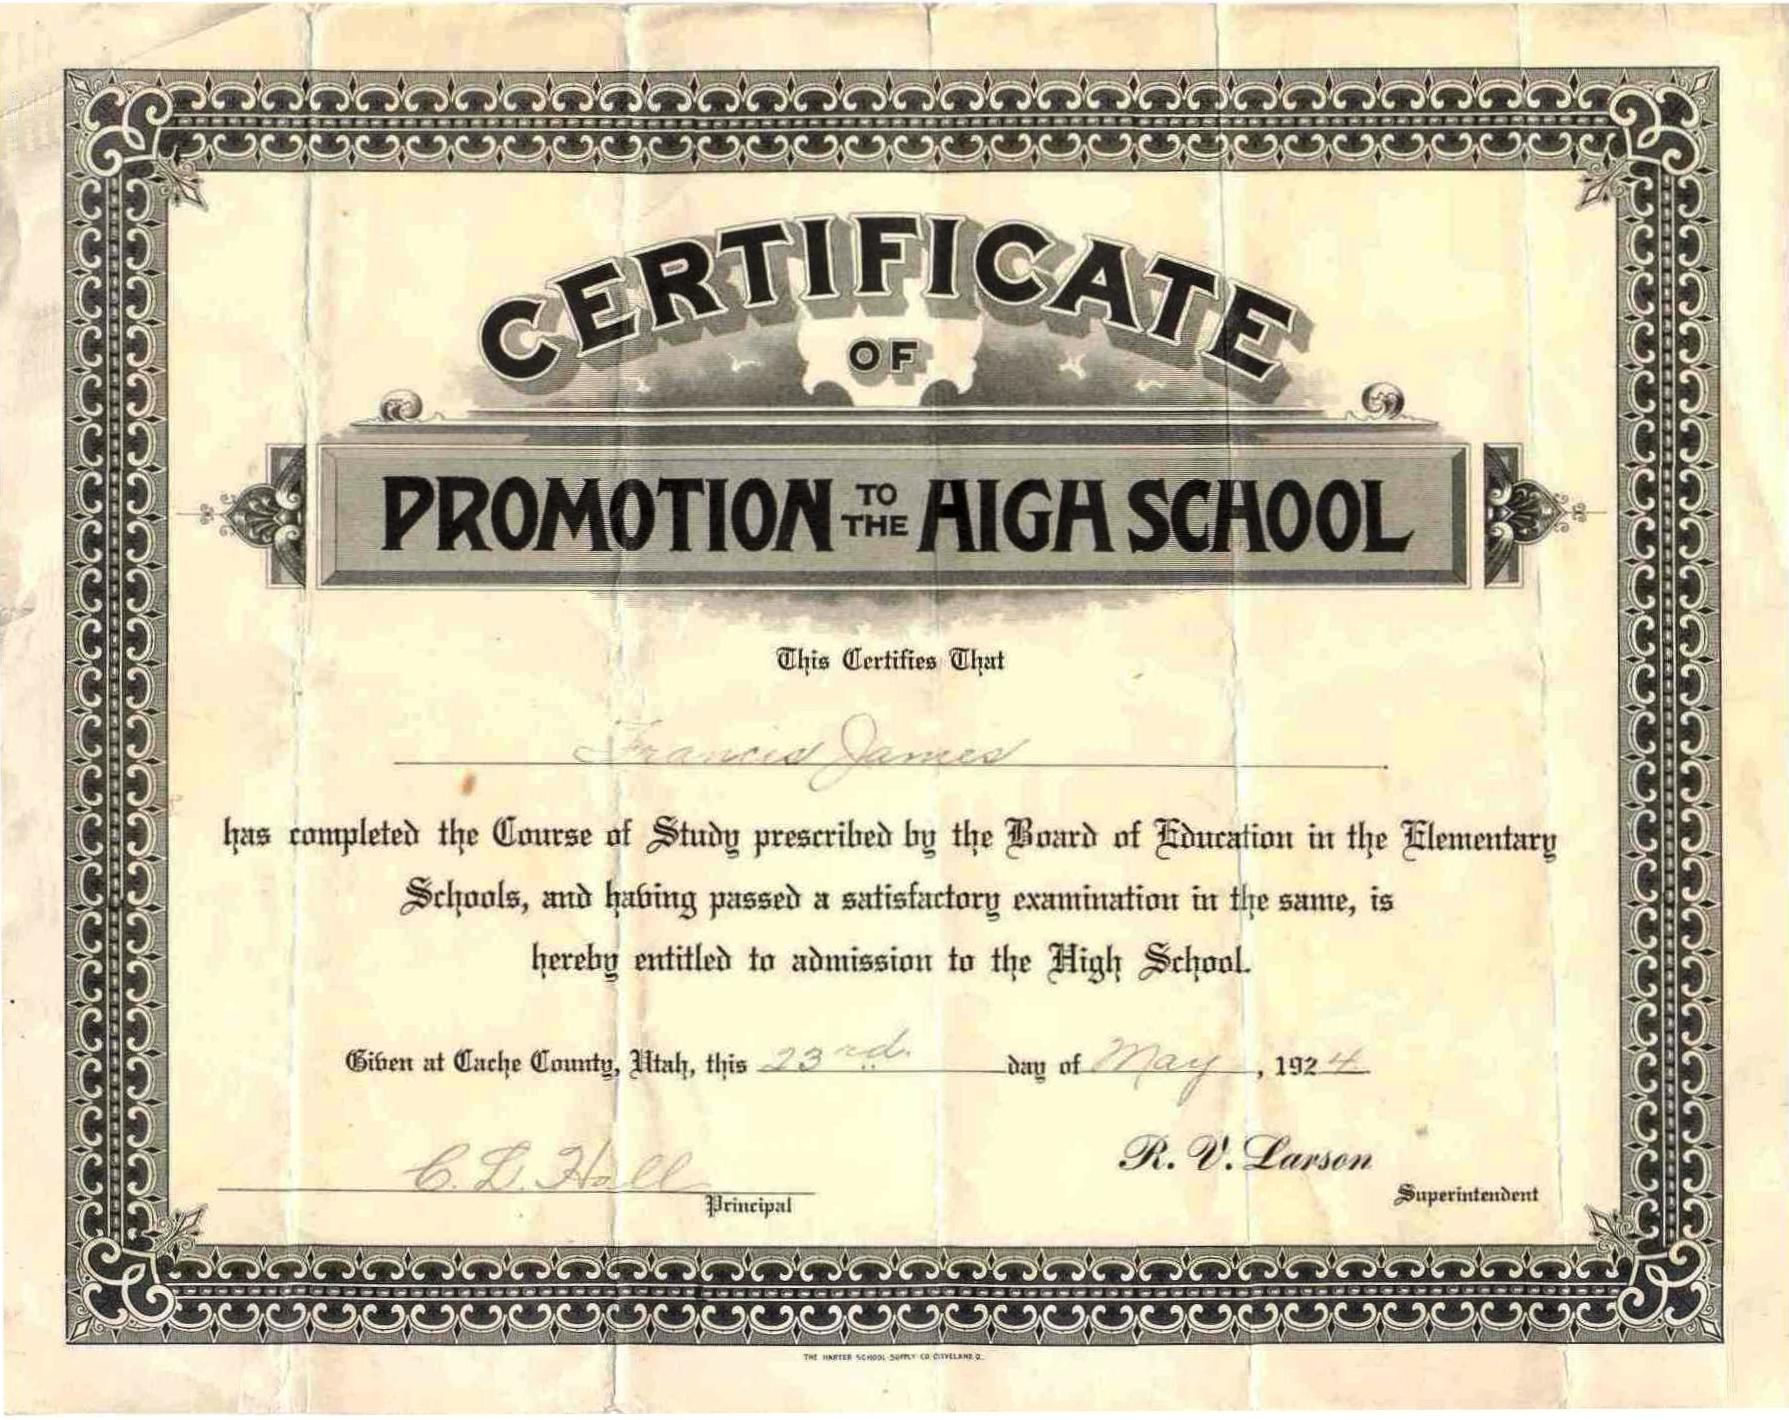 documents elementary school graduation certificate for francis jacob james ken melissas family history site